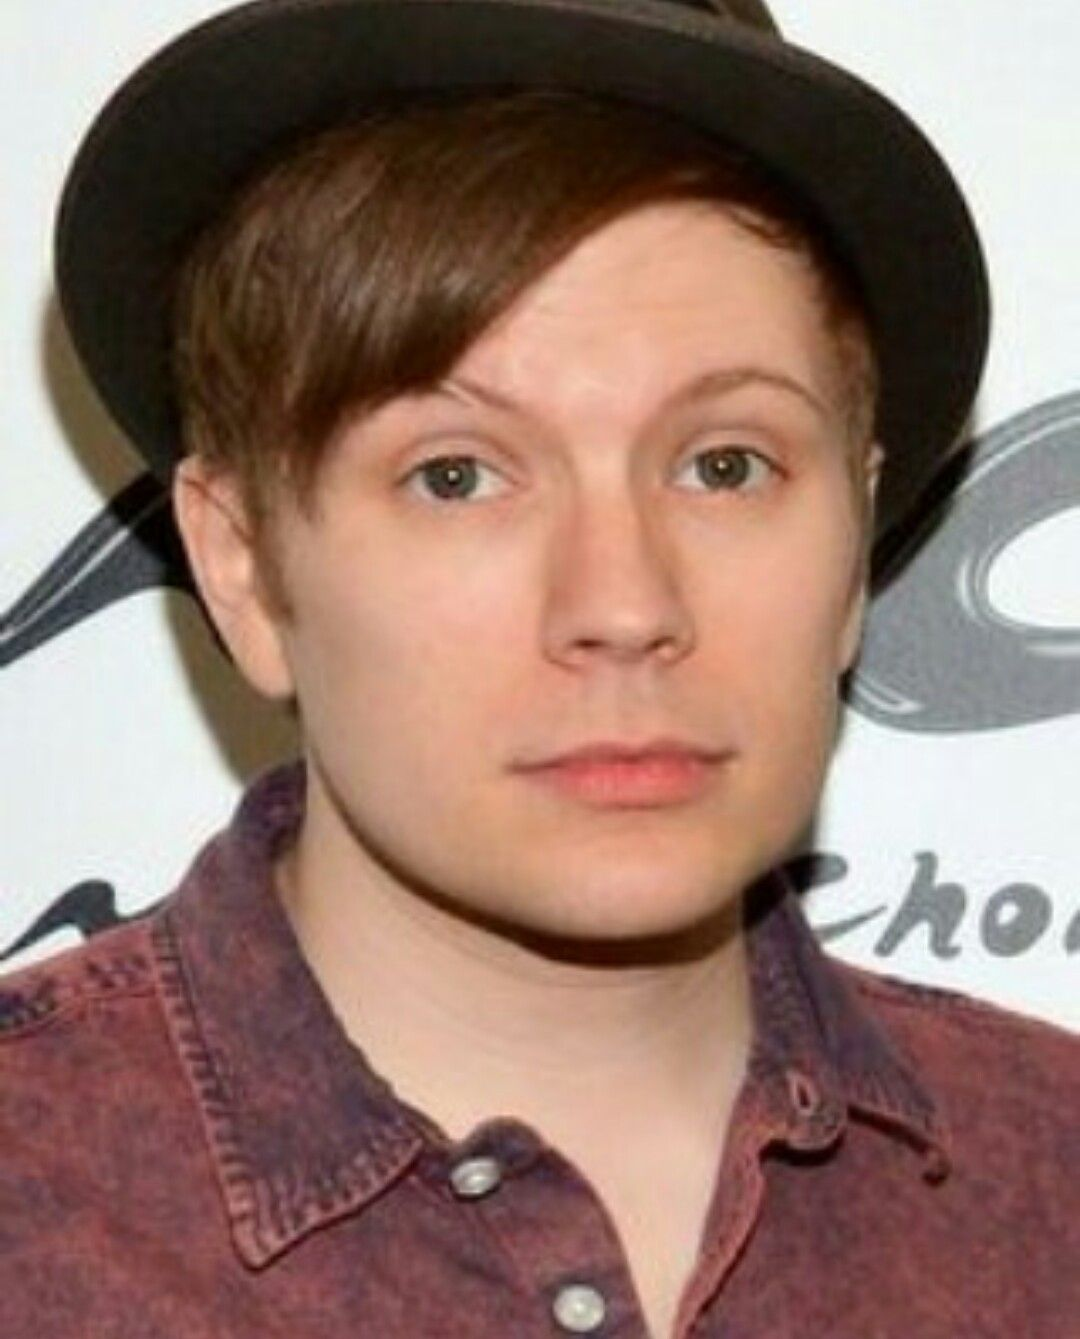 The right eyebrow | Fall out boy, Lead singer, Singer